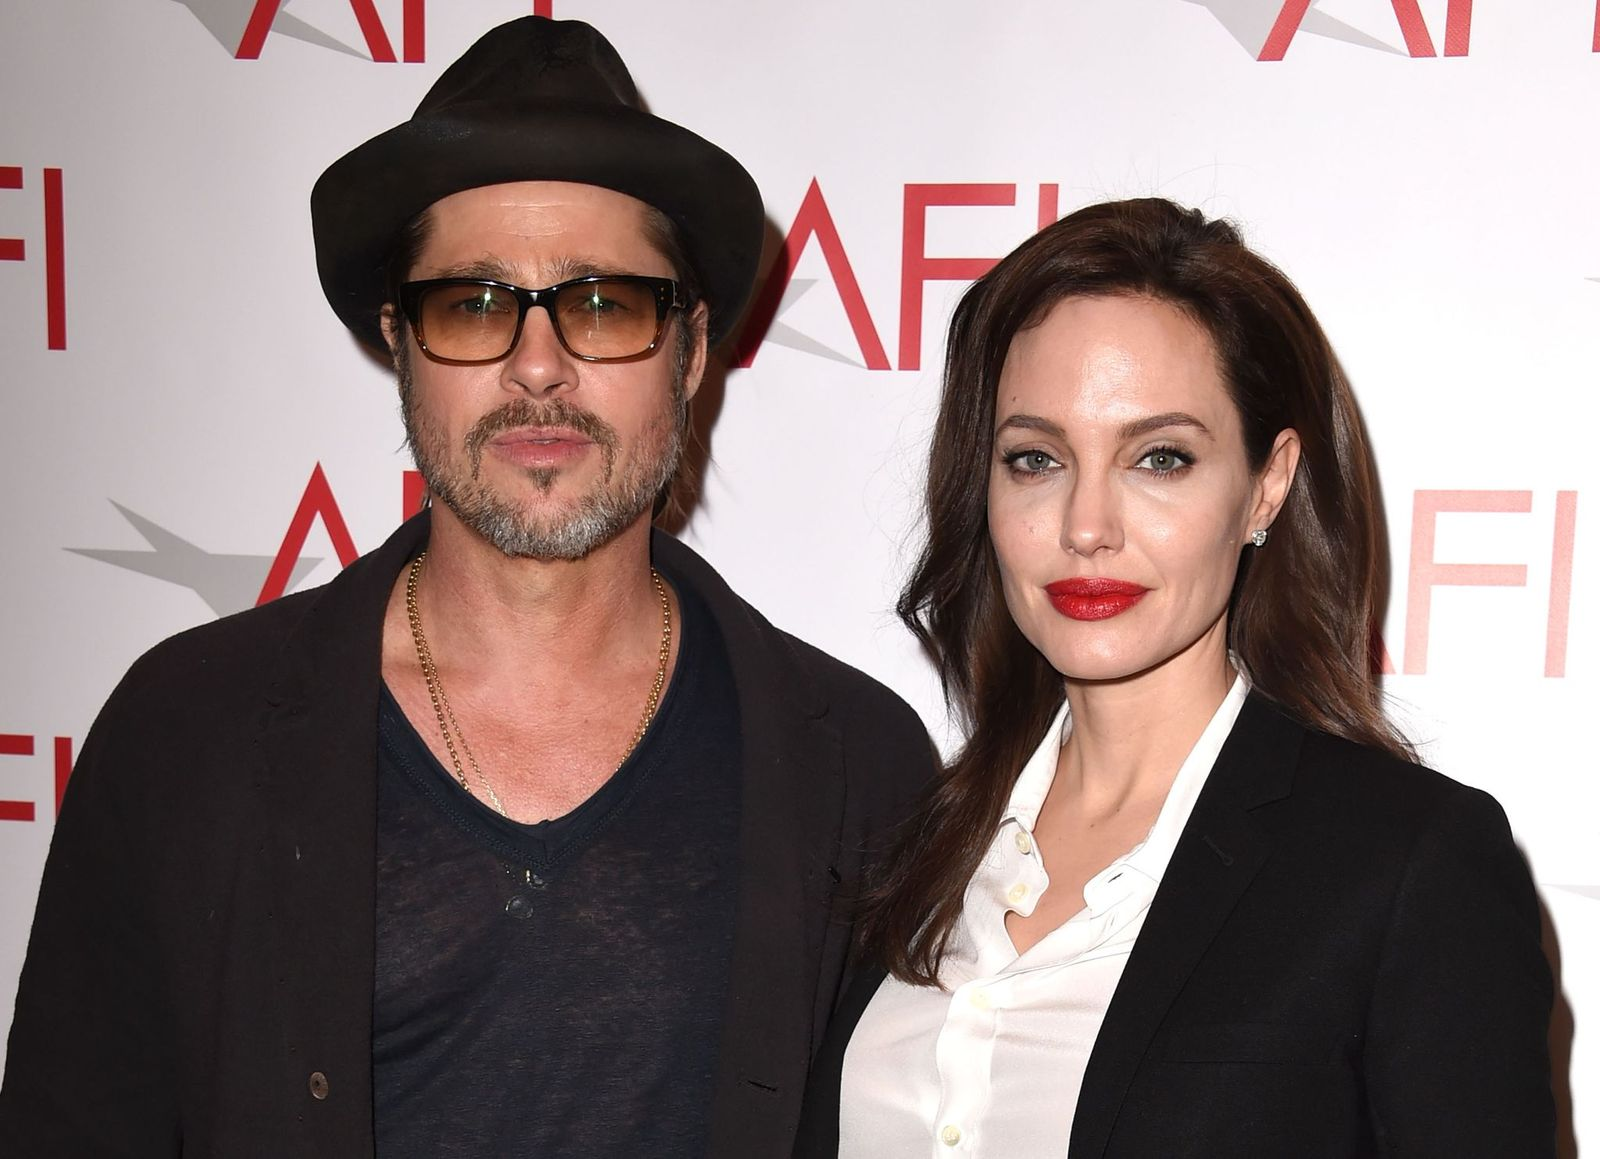 Brad Pitt and Angelina Jolie at the 15th Annual AFI Awards at Four Seasons Hotel Los Angeles at Beverly Hills on January 9, 2015 | Photo: Getty Images